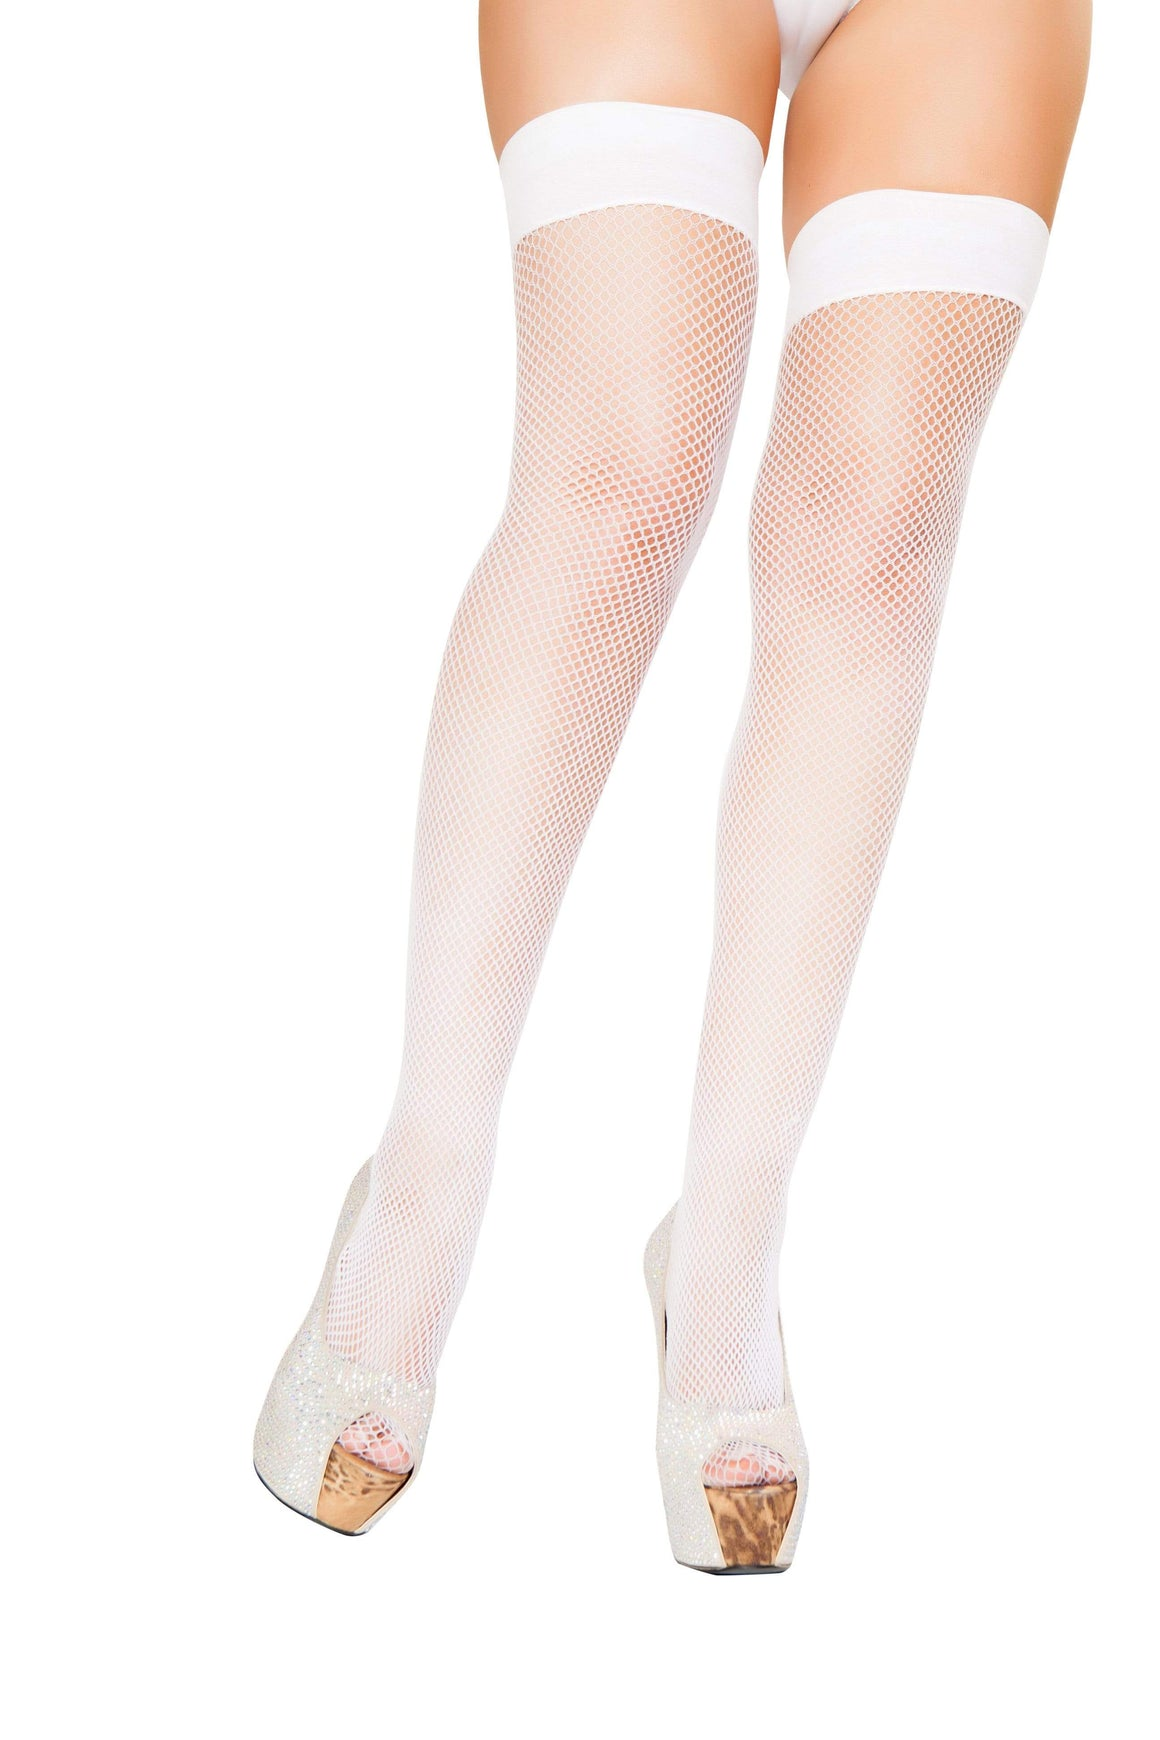 Roma White / One Size White Fish Net Silicone Band Lace Top Thigh High Stockings SHC-ST102-R Apparel & Accessories > Clothing > Pants